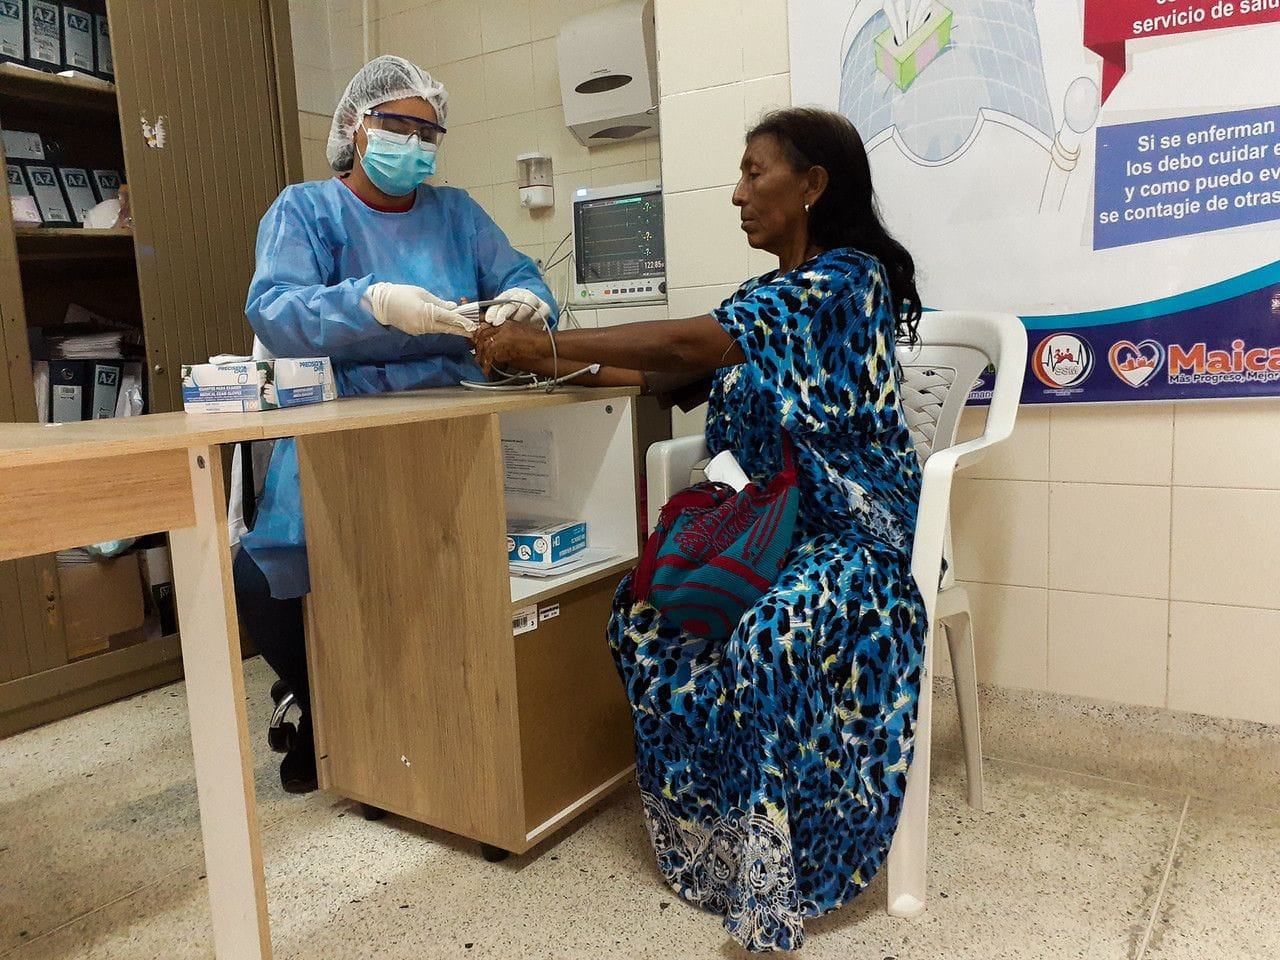 Nursing assistant taking blood pressure of patient at an Americares clinic in Colombia